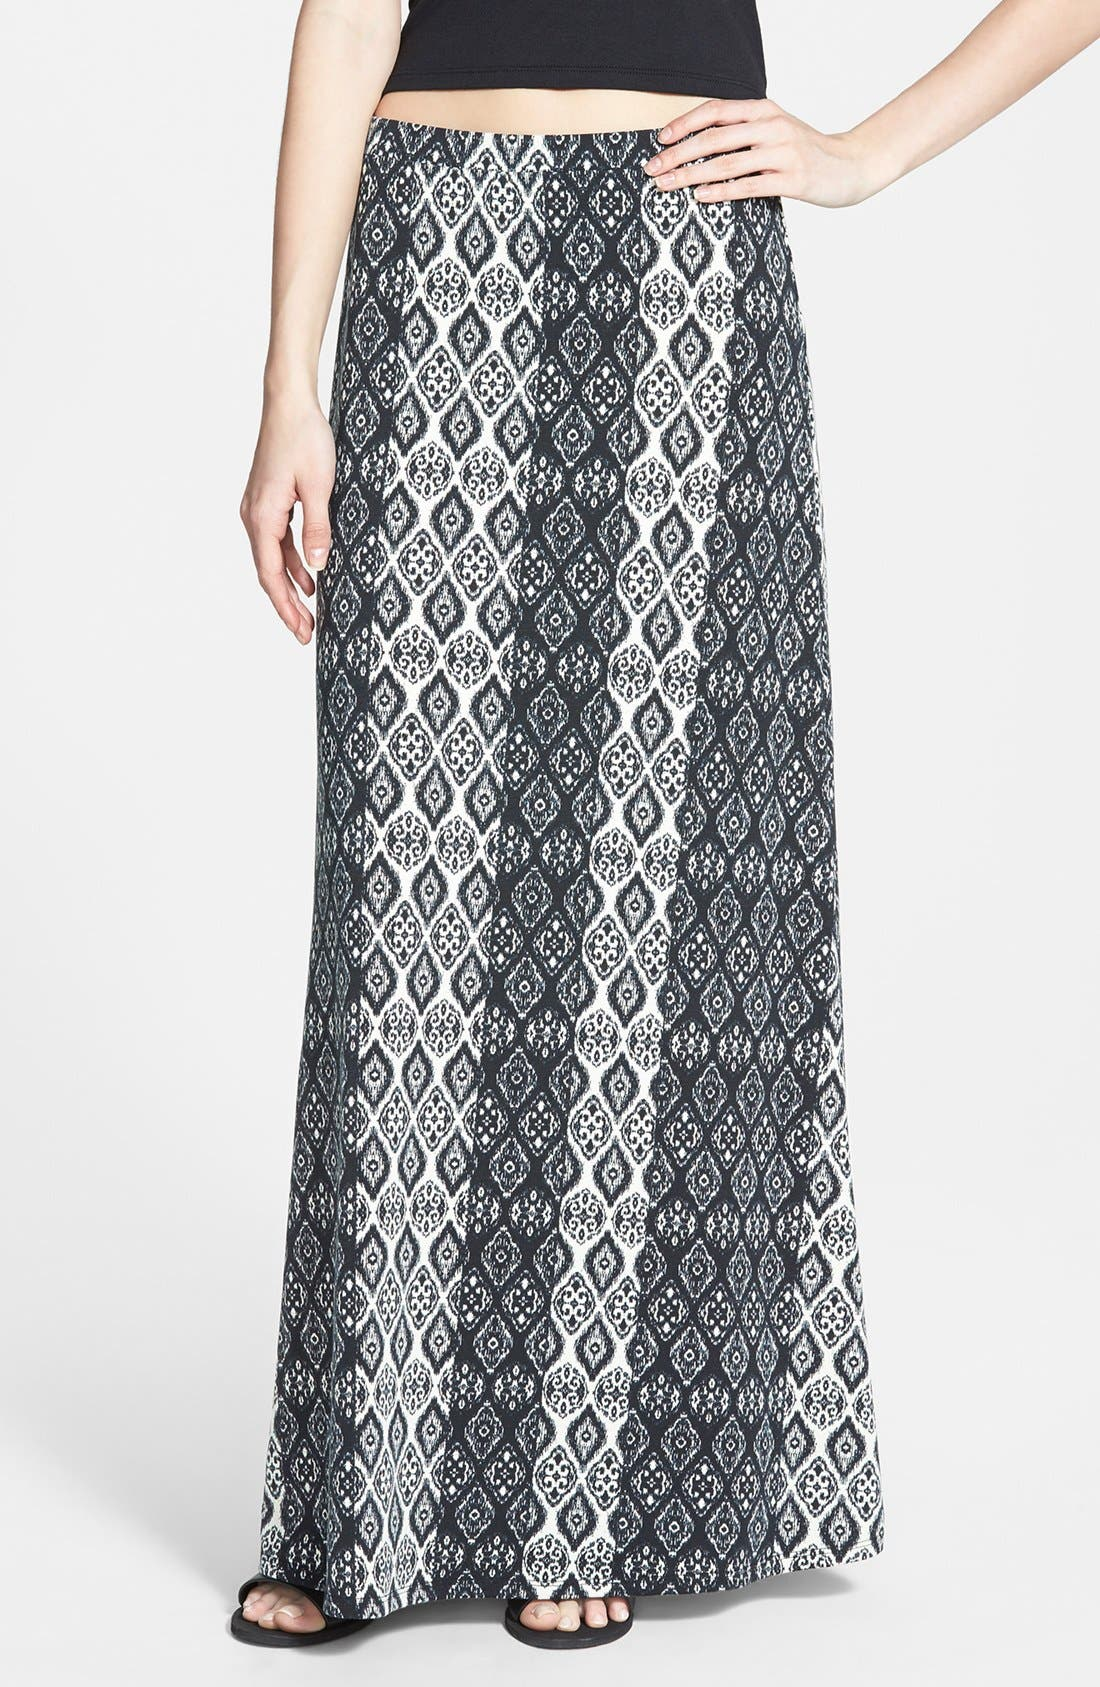 LILY WHITE, Maxi Skirt, Main thumbnail 1, color, 001